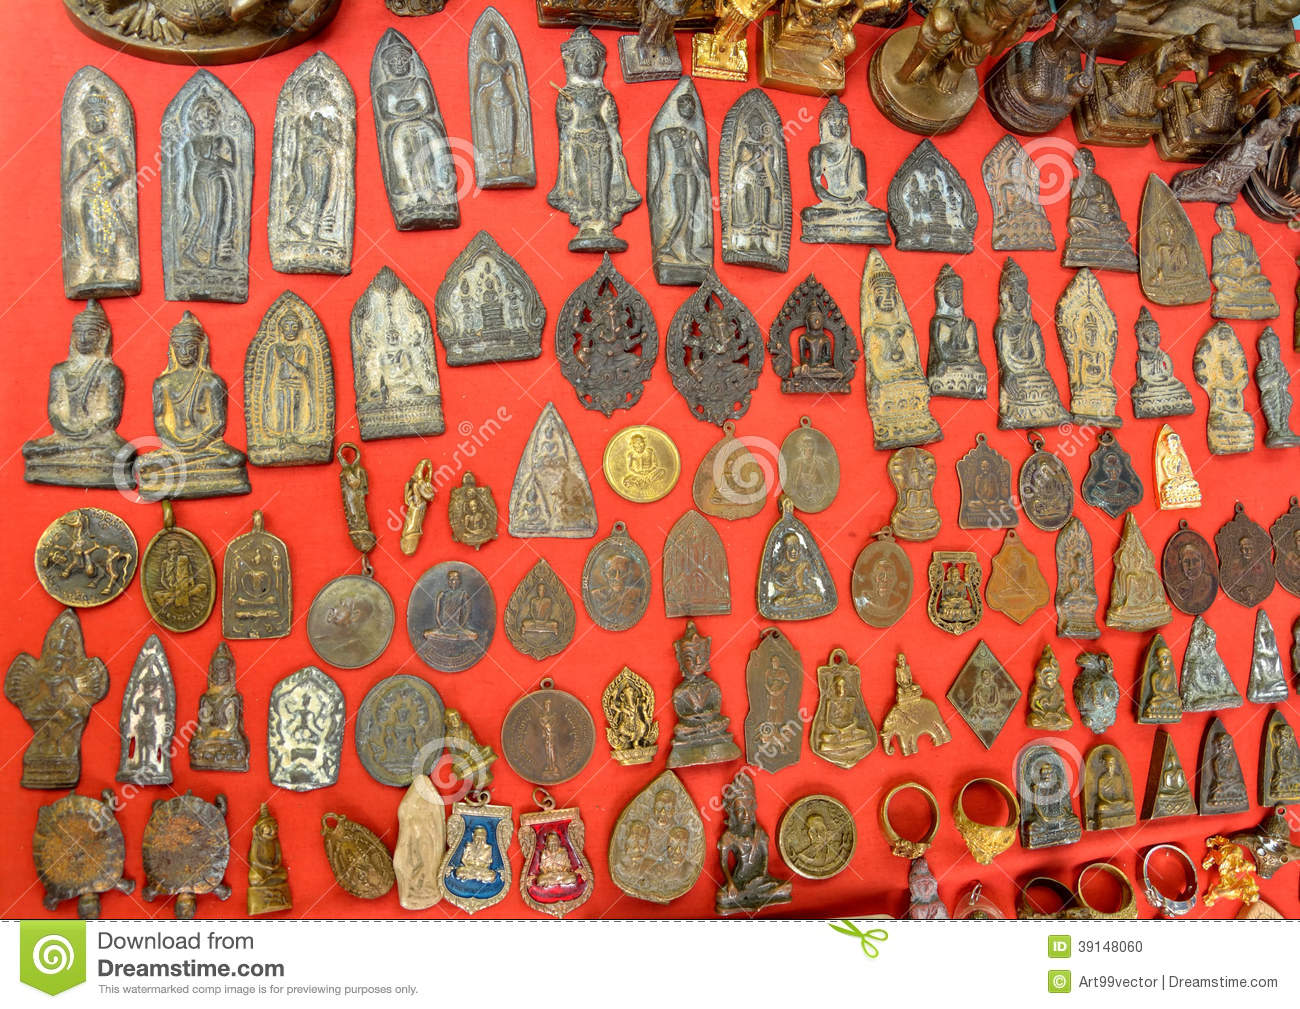 Fetishes Thailand Amulets Popular Buddhist The Faith To Secure A Fortune By Trade And Hang Neck The Red Background